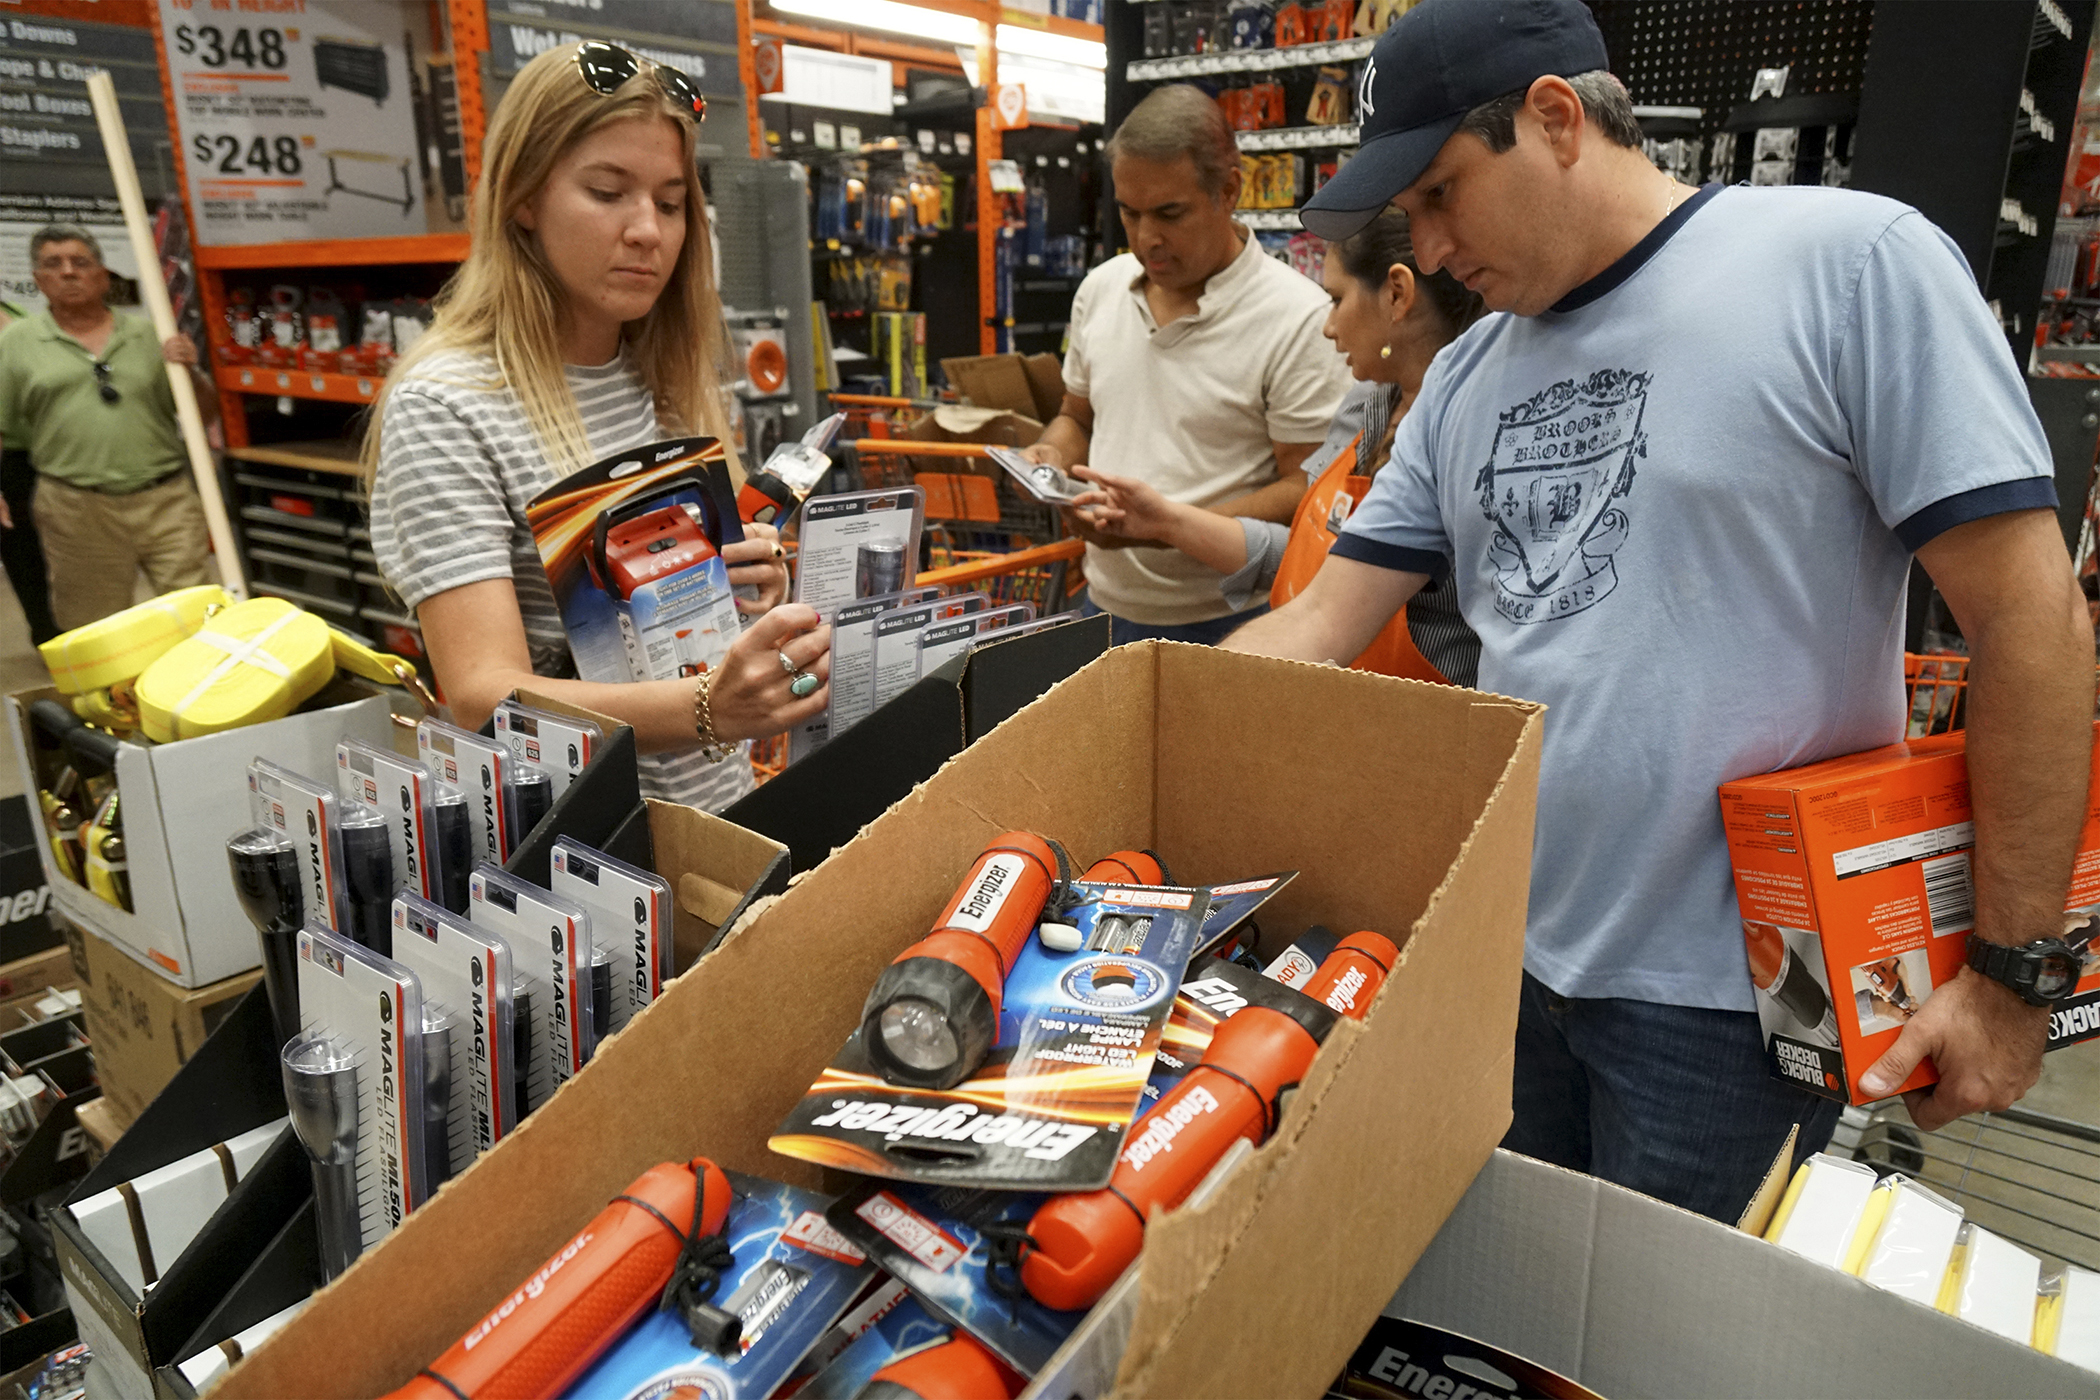 Customers shop for flashlights and batteries at a Home Depot Inc. store in Miami, Florida, on Oct. 4, 2016.